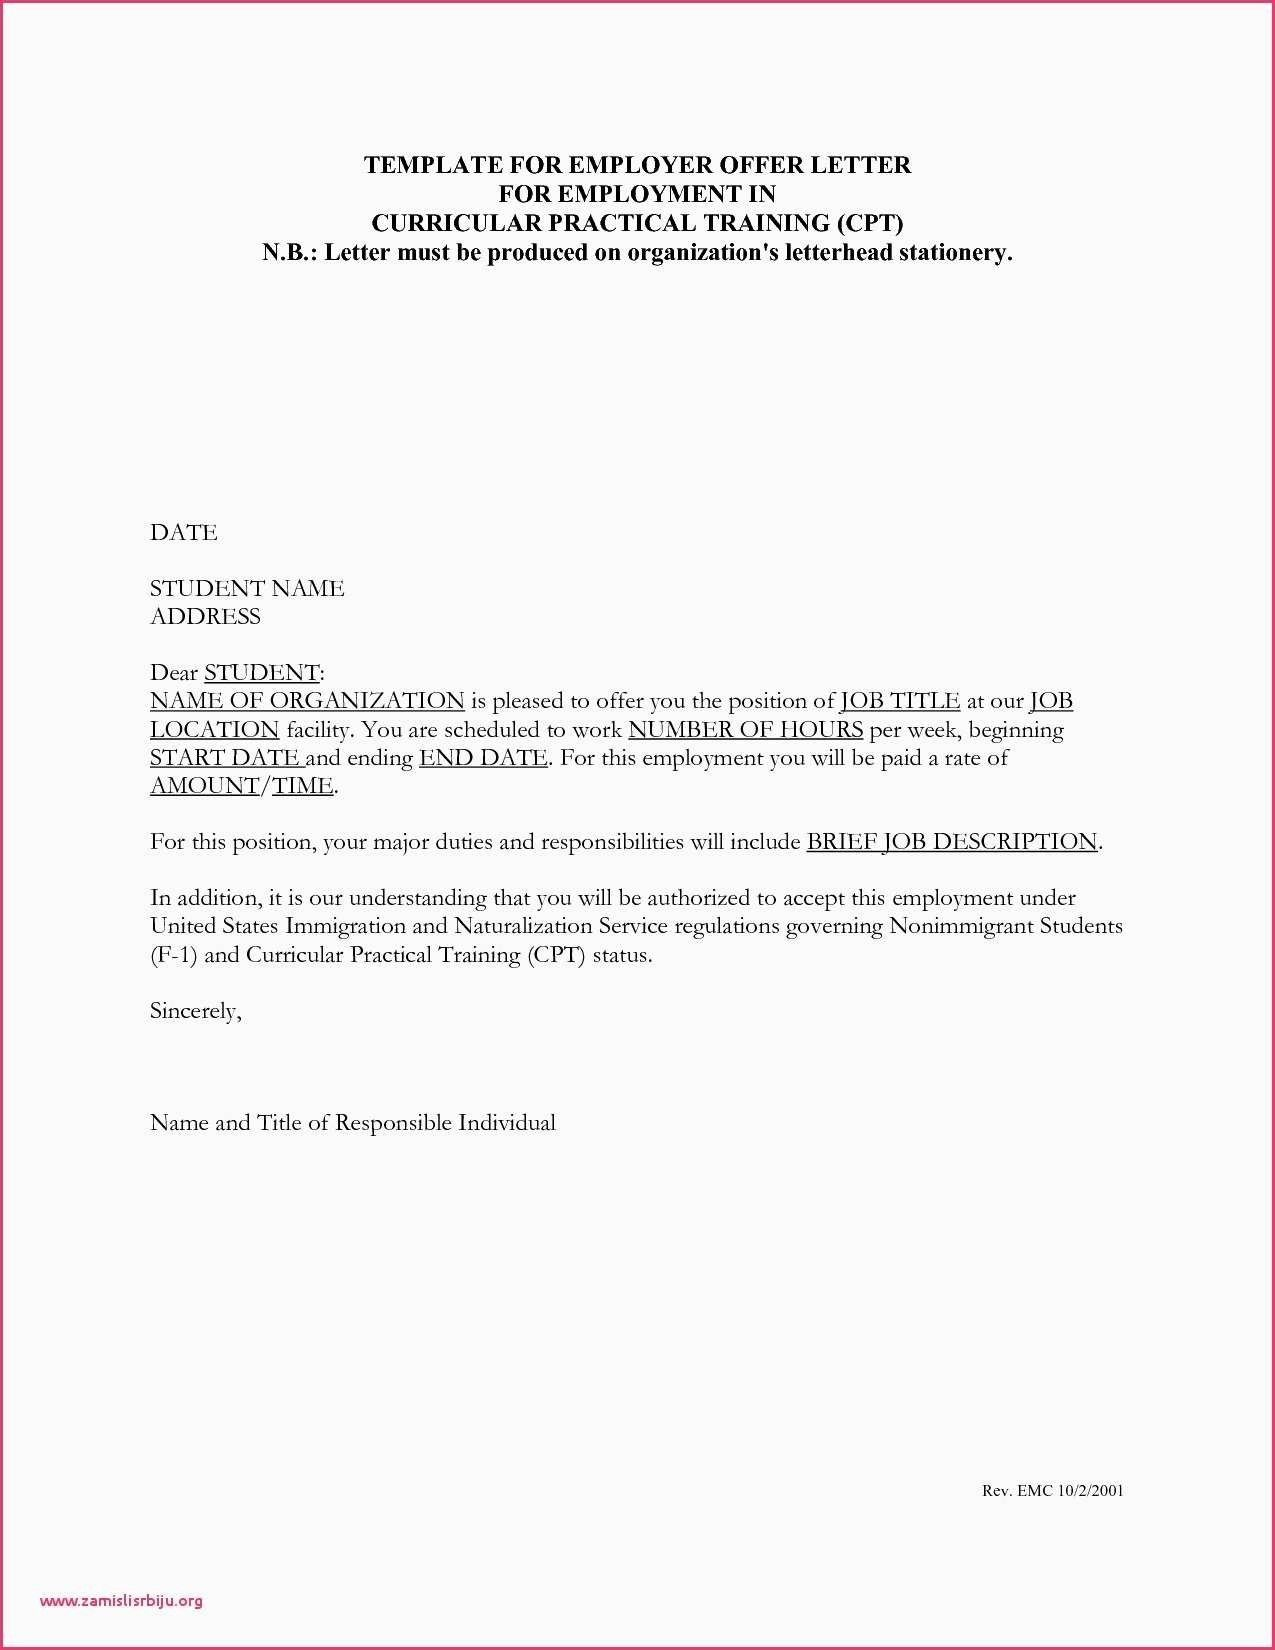 new immigration letter format example, lettering download sample cv in ms word career objective for computer science entry level dispatcher resume